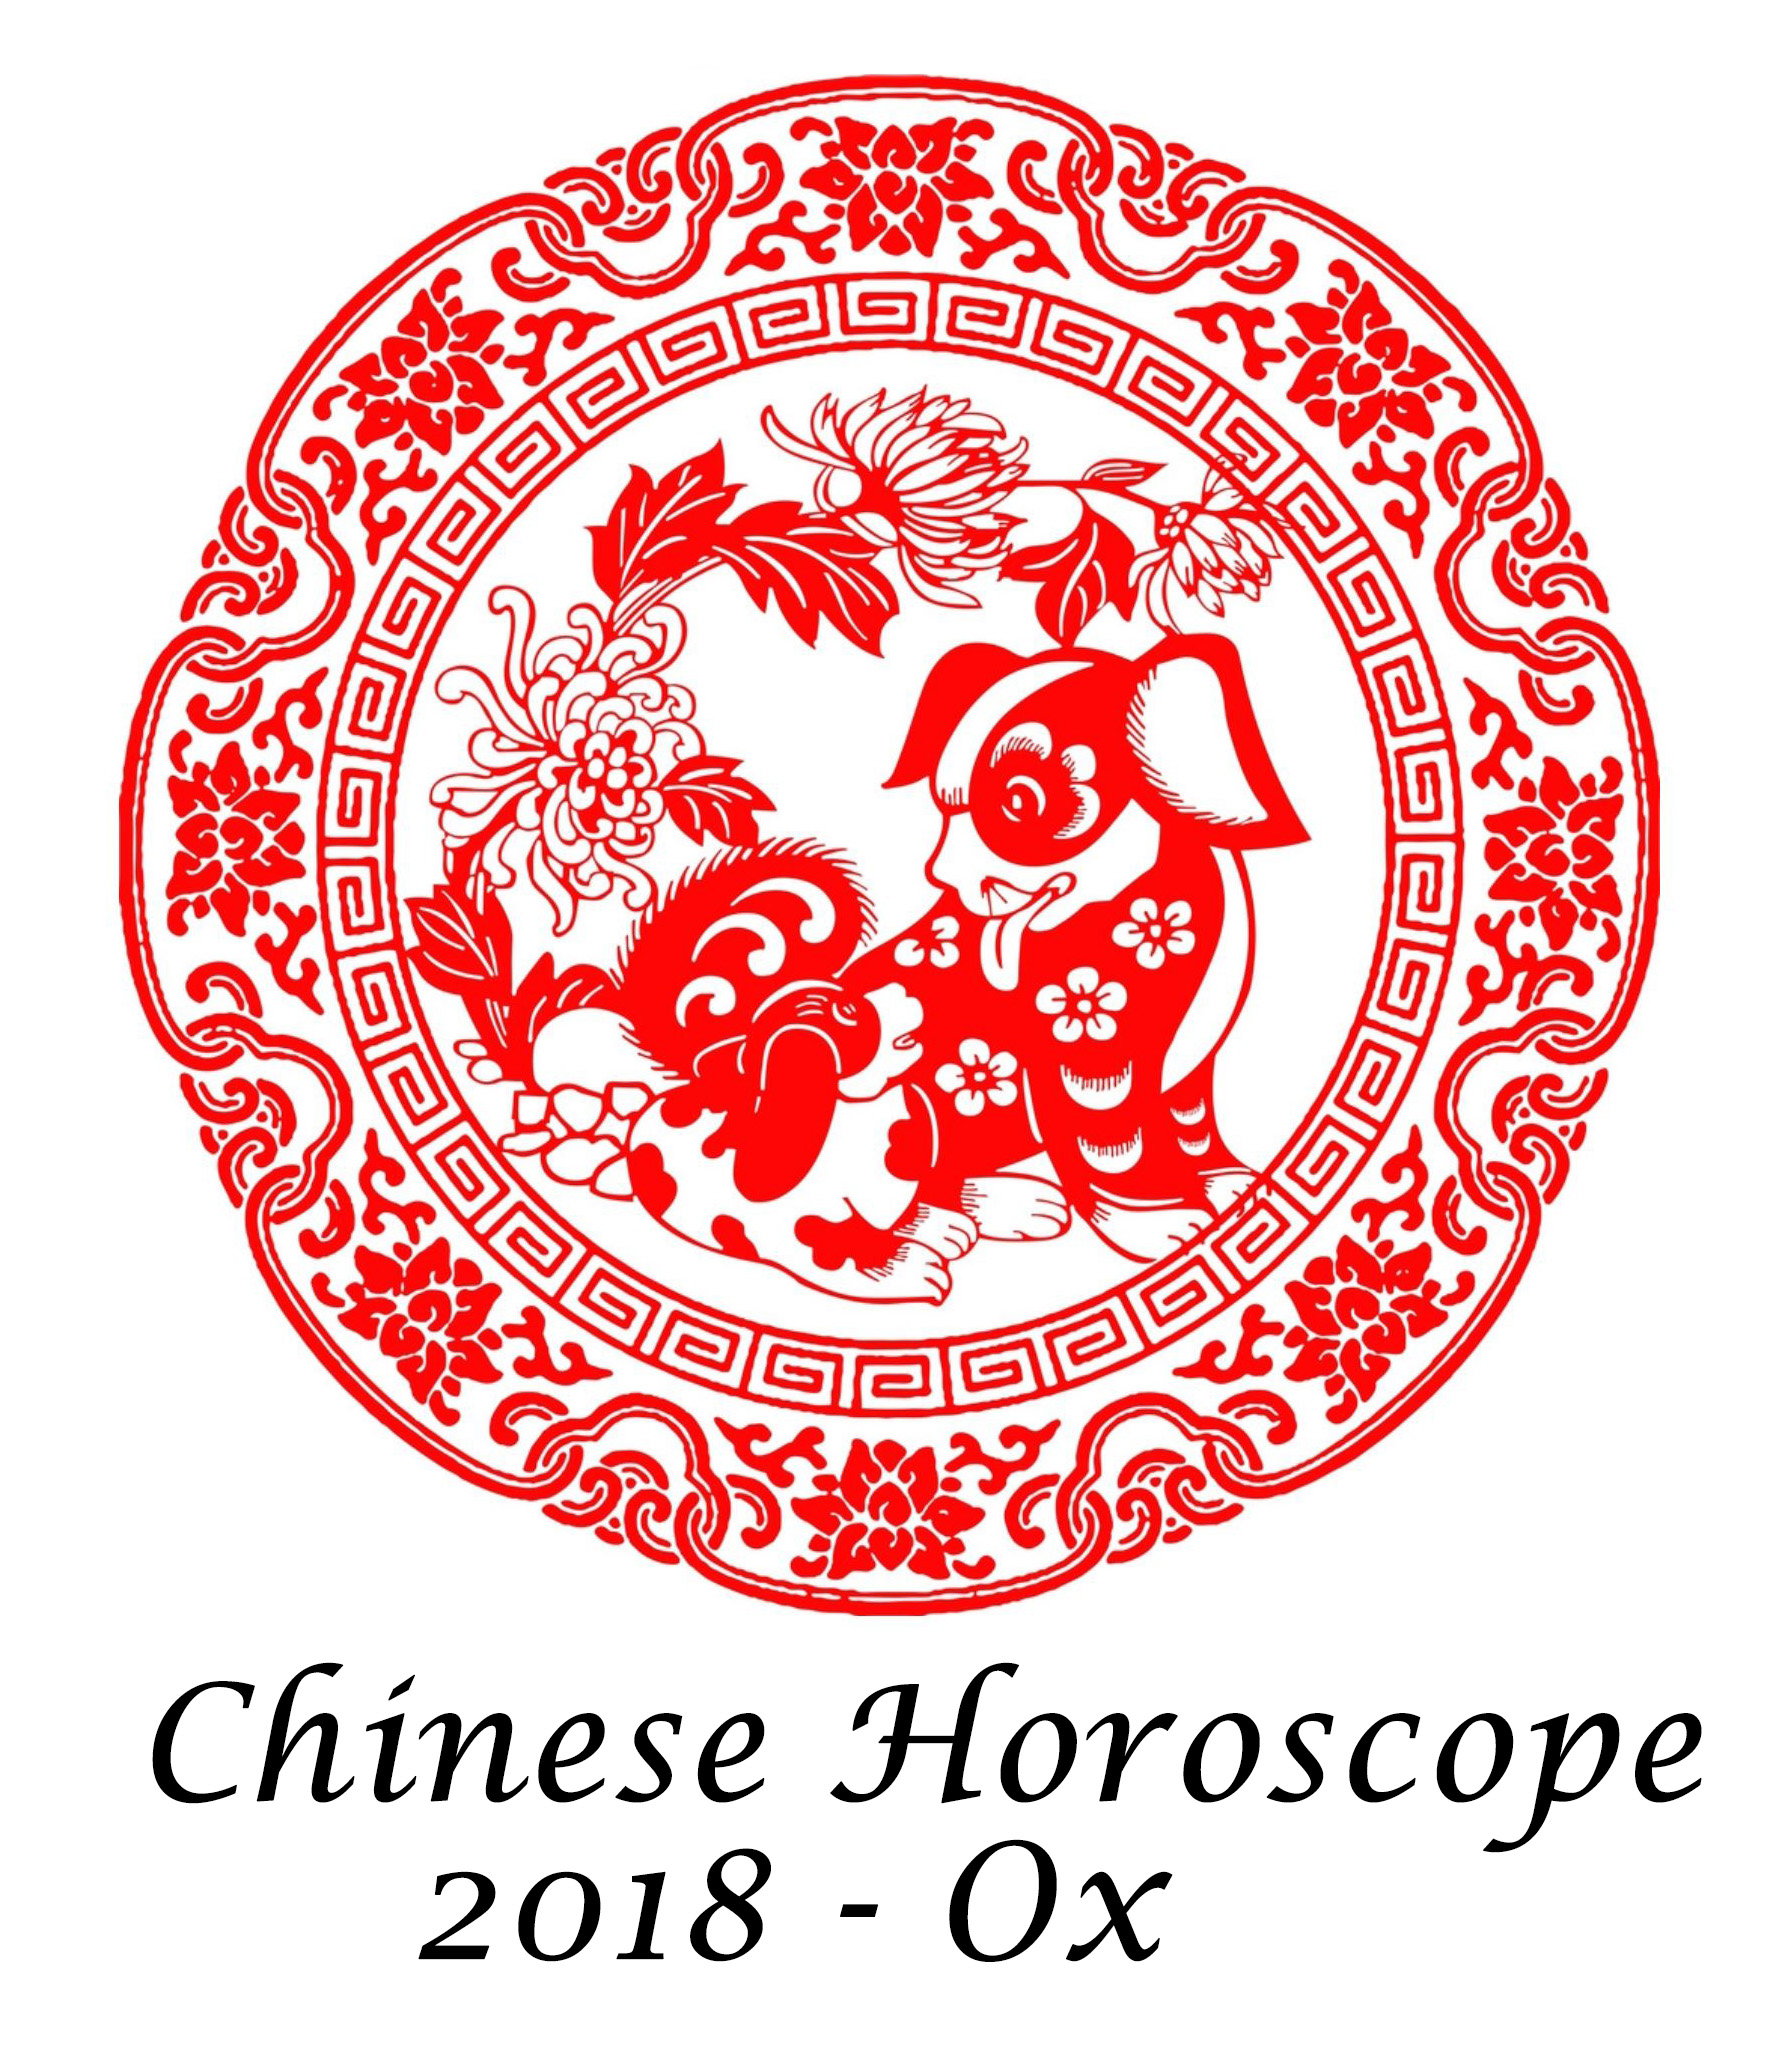 chinese horoscope ox 2018 feng shui import. Black Bedroom Furniture Sets. Home Design Ideas